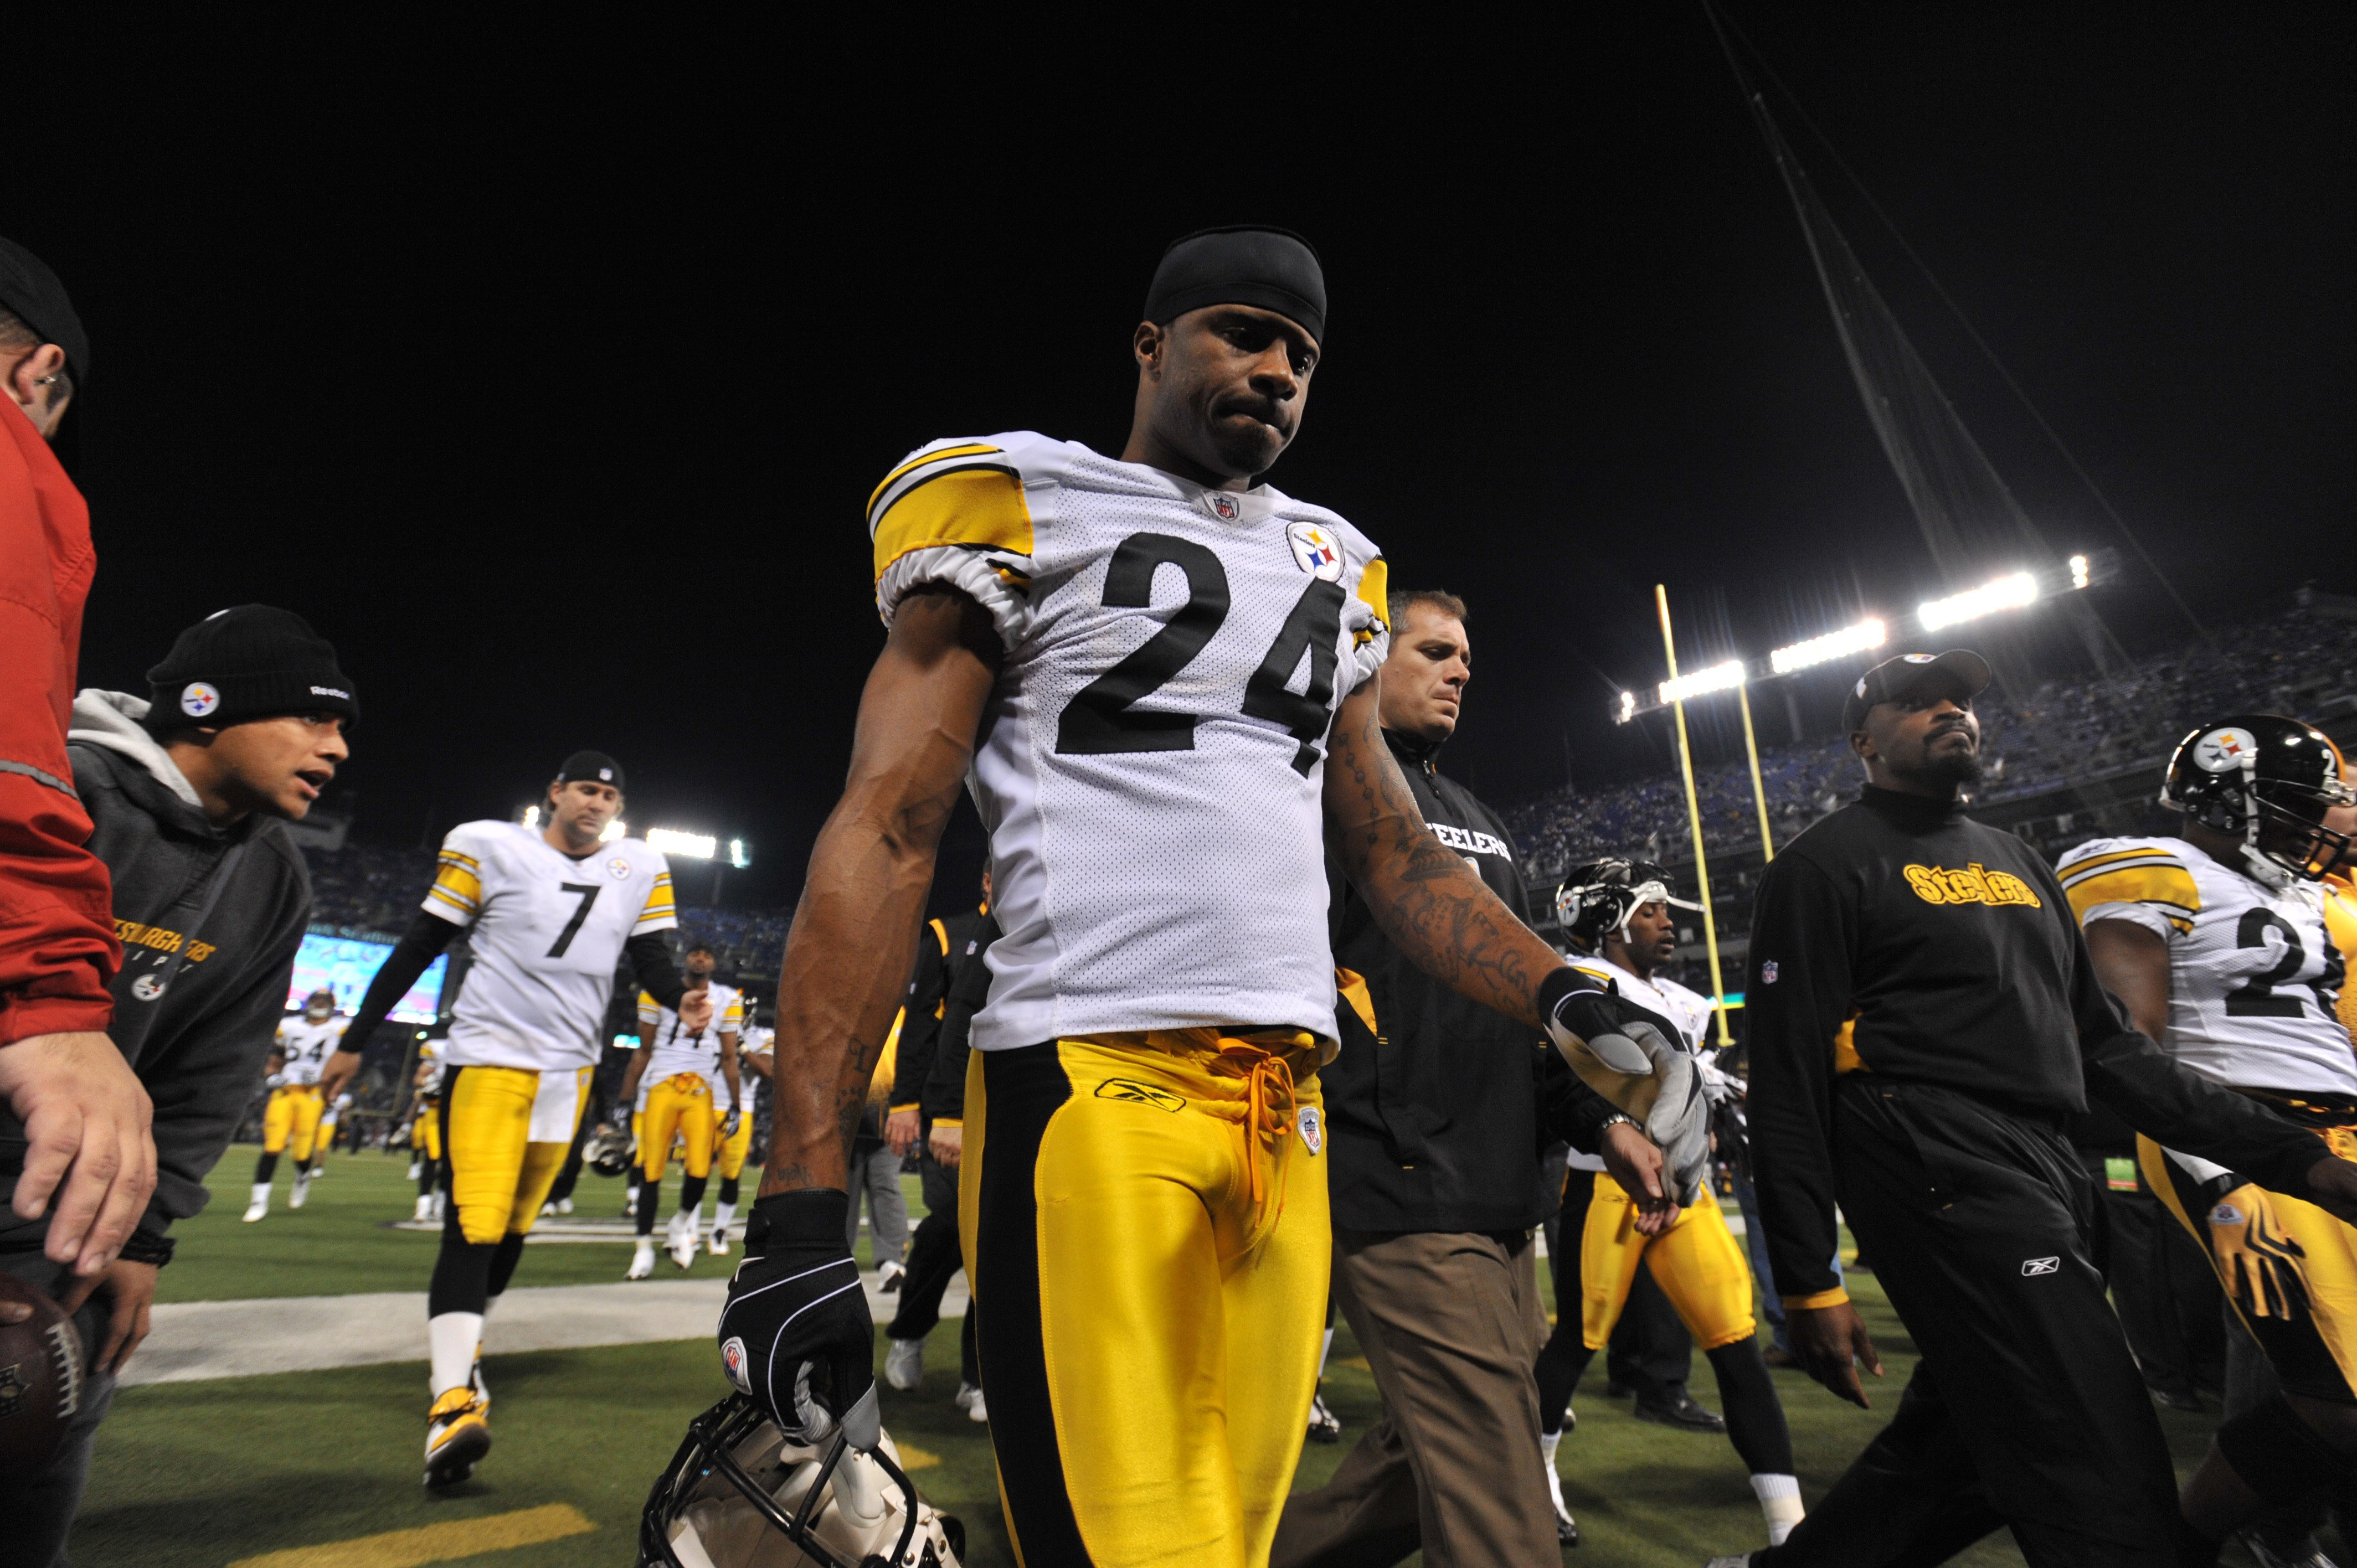 BALTIMORE - NOVEMBER 29:  Ike Taylor #24 of the Pittsburgh Steelers walks off the field after warmups before the game against the  Baltimore Ravens at M&T Bank Stadium on November 29, 2009 in Baltimore, Maryland. The Ravens defeated the Steelers 20-17. (P